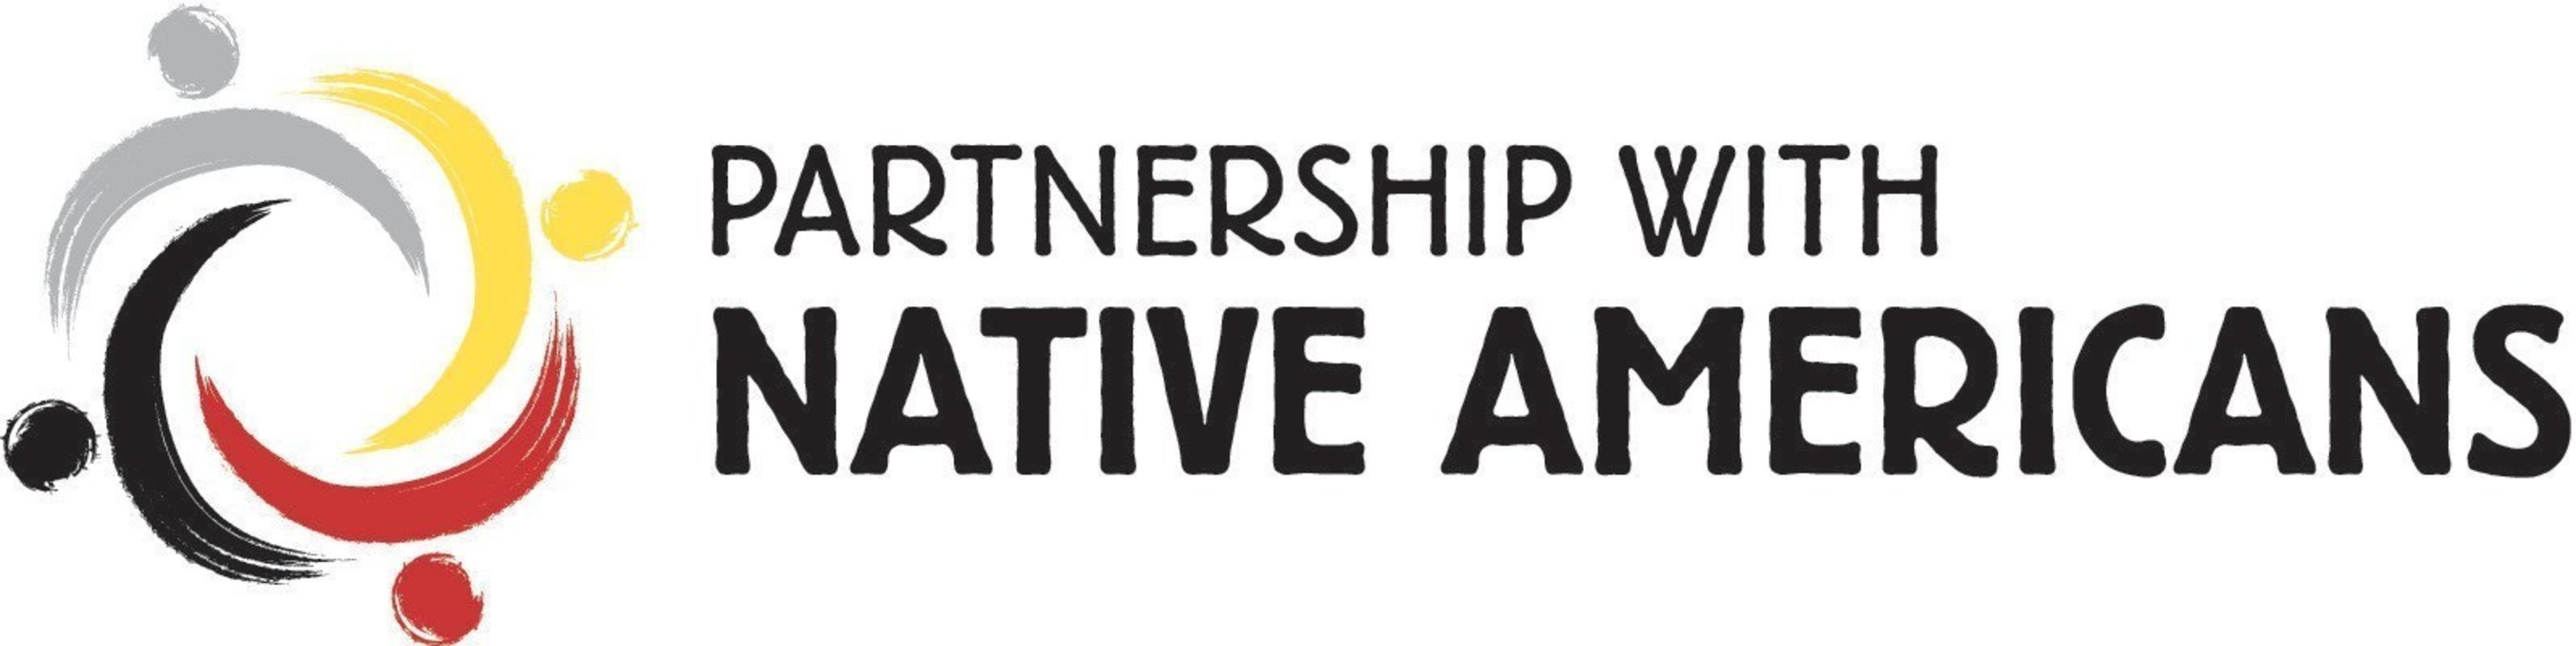 Partnership With Native Americans, a 501c3 nonprofit organization, provides consistent aid and services for ...